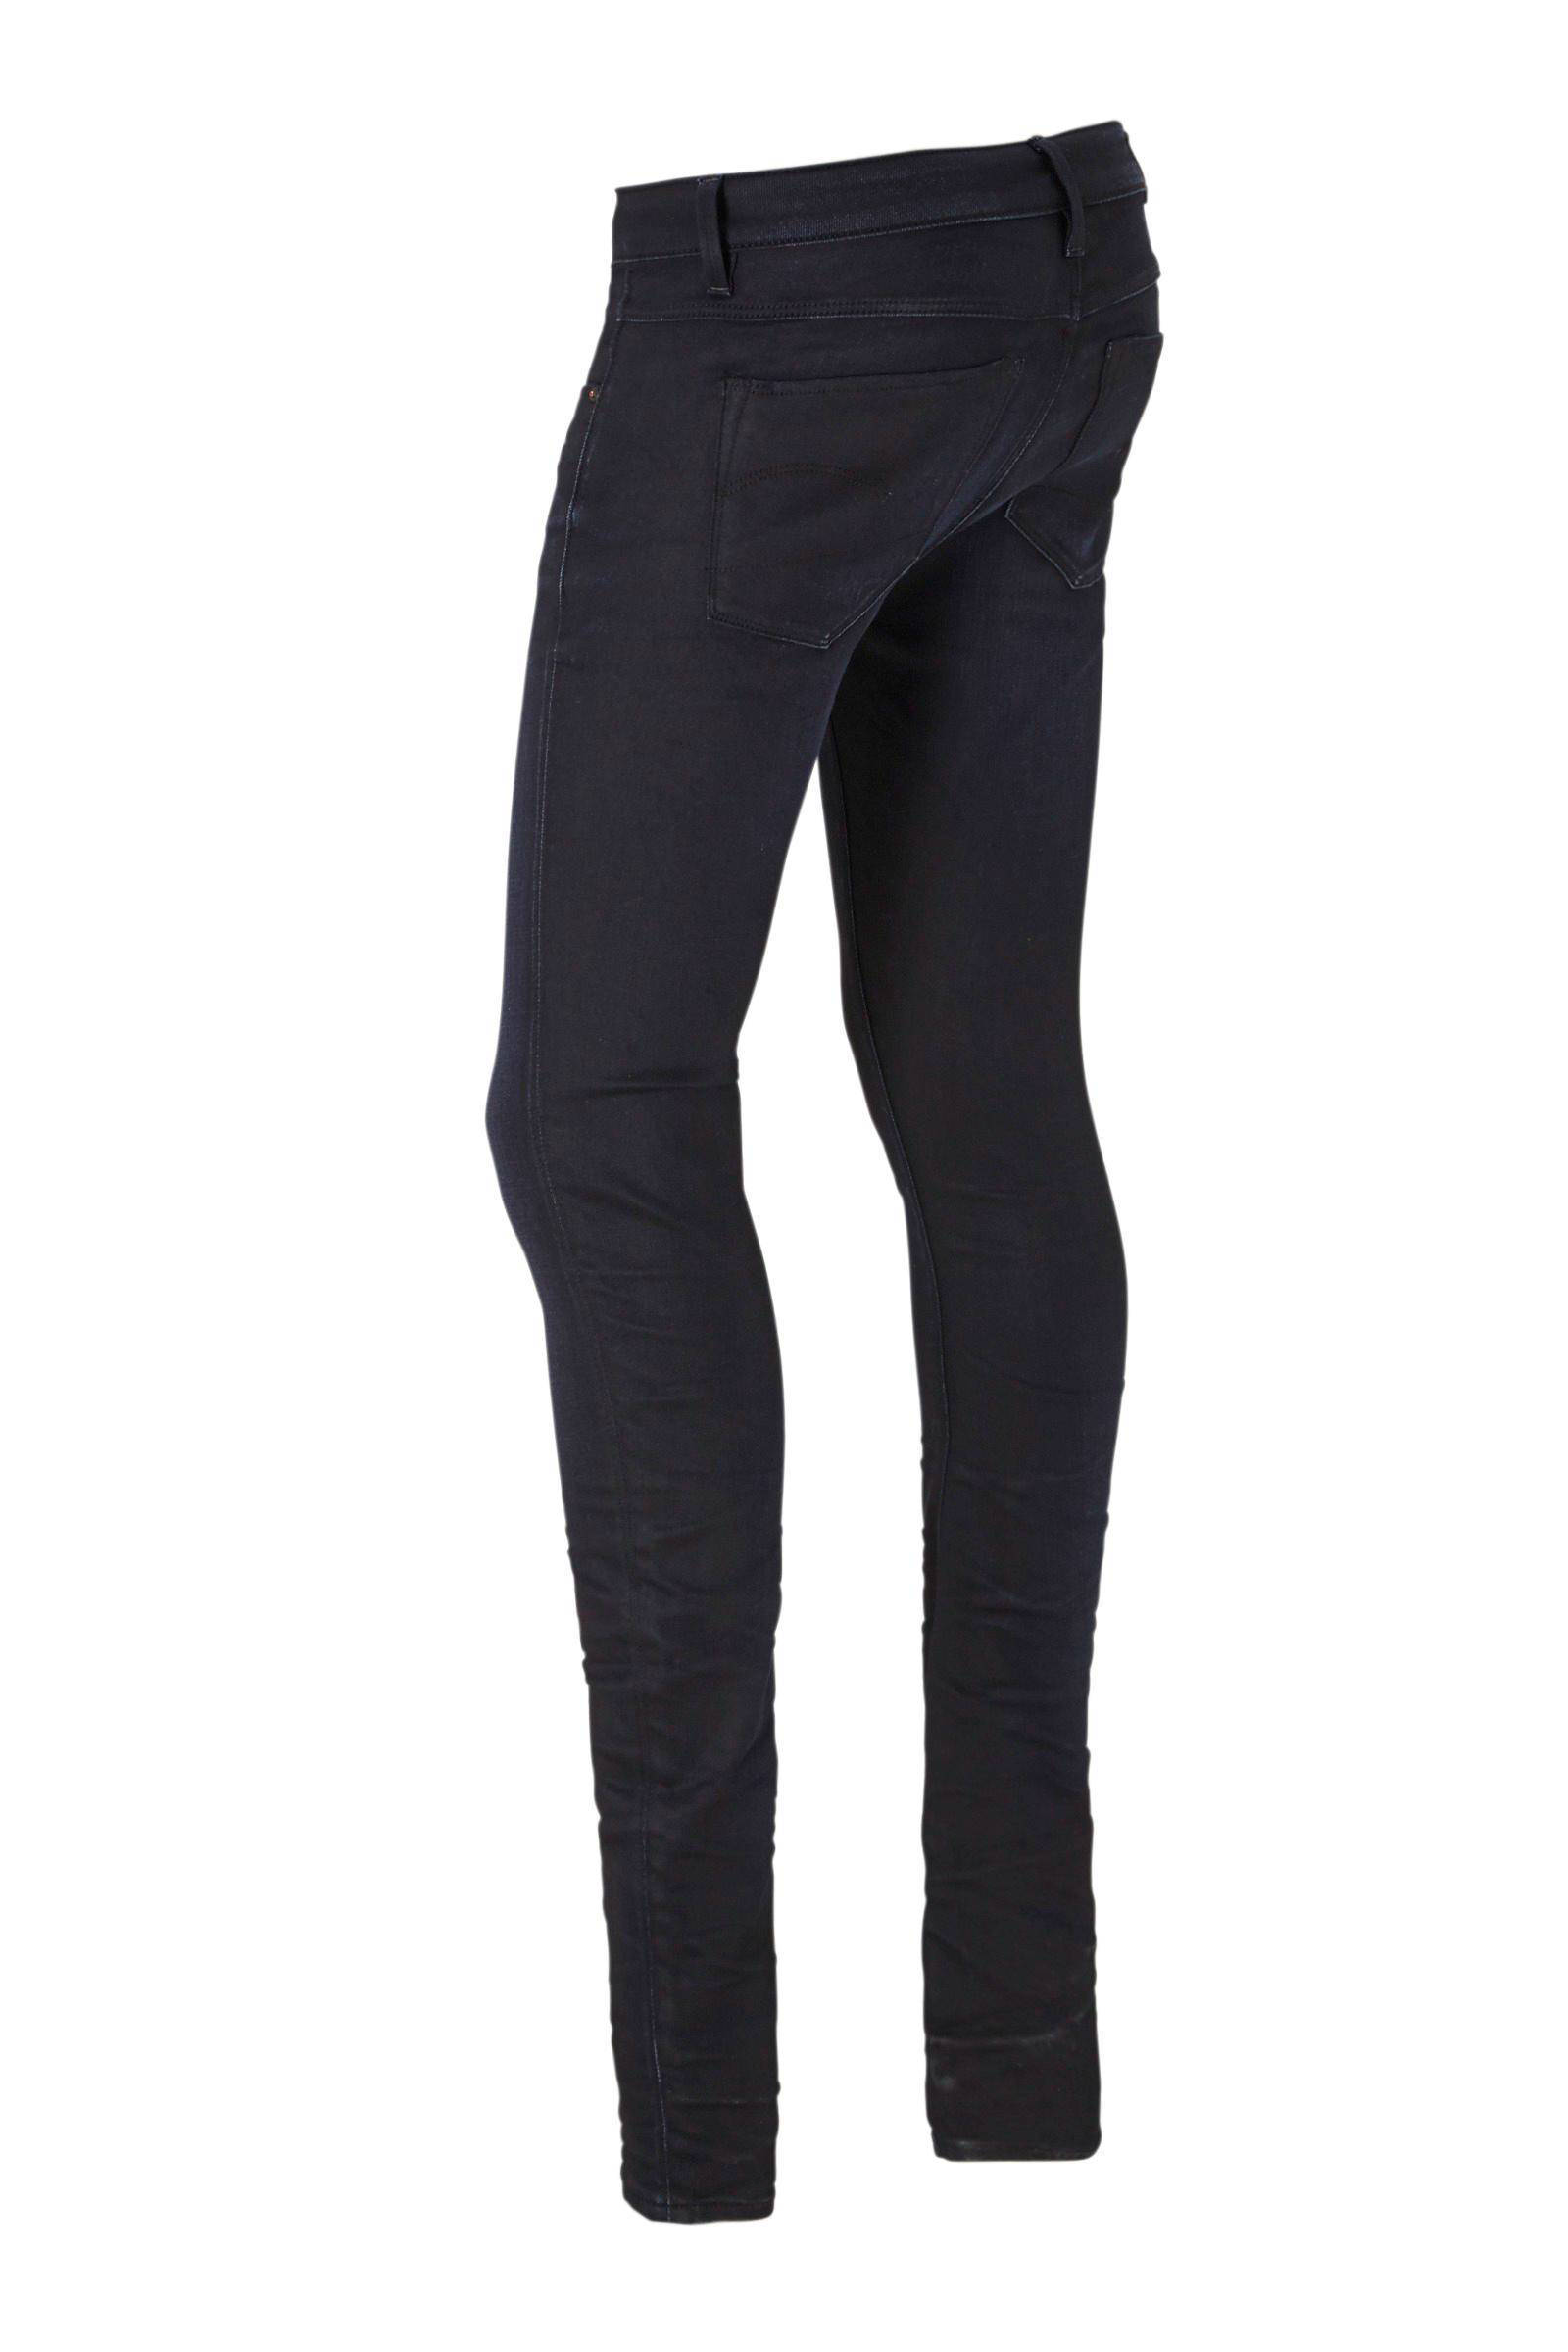 3301 High rise slim fit jeans met stretch